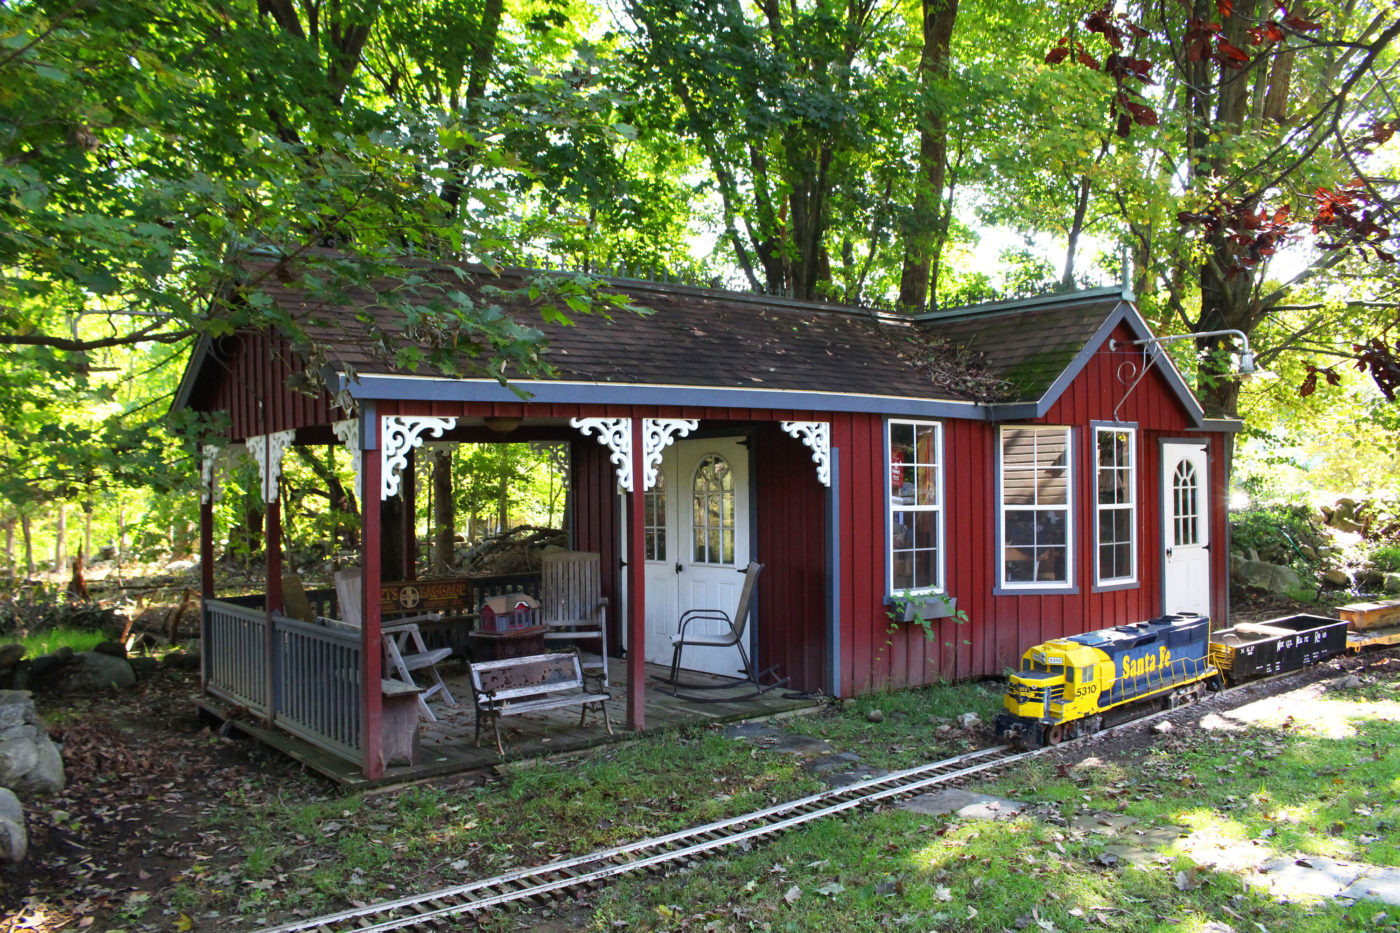 shed as a train depot